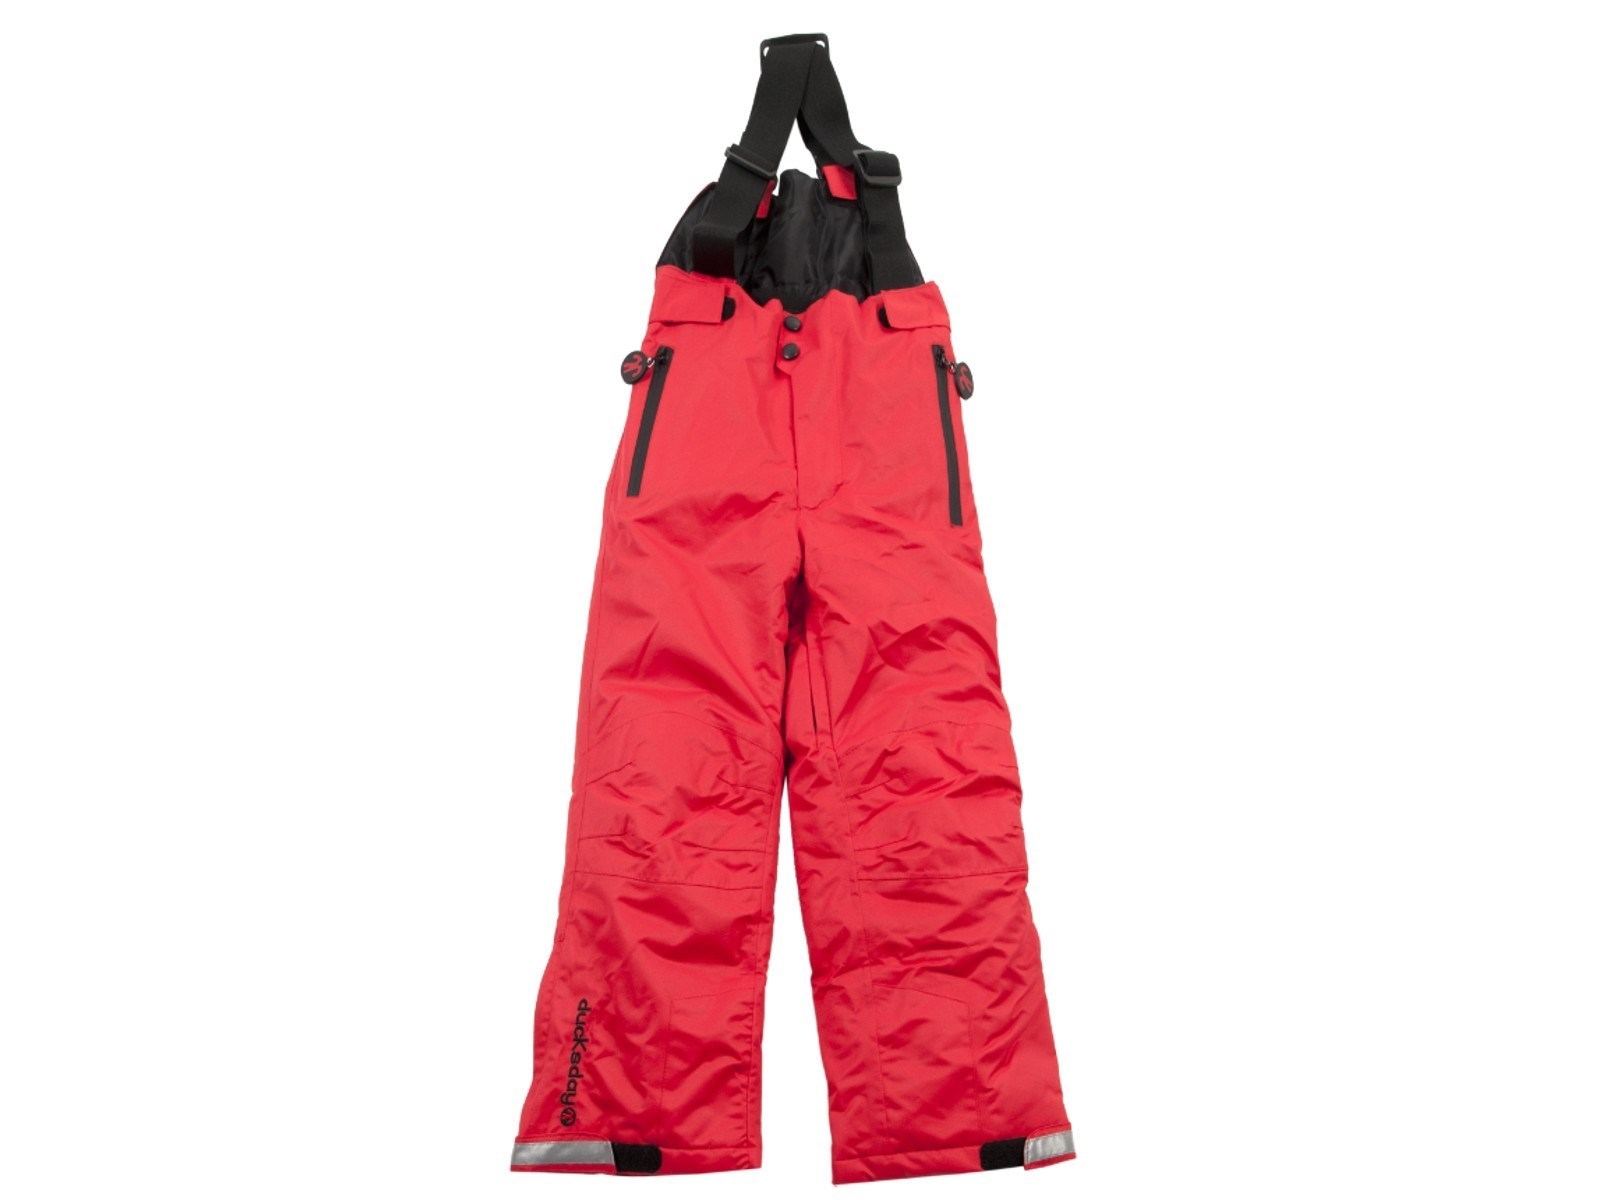 Ducksday Skihose red